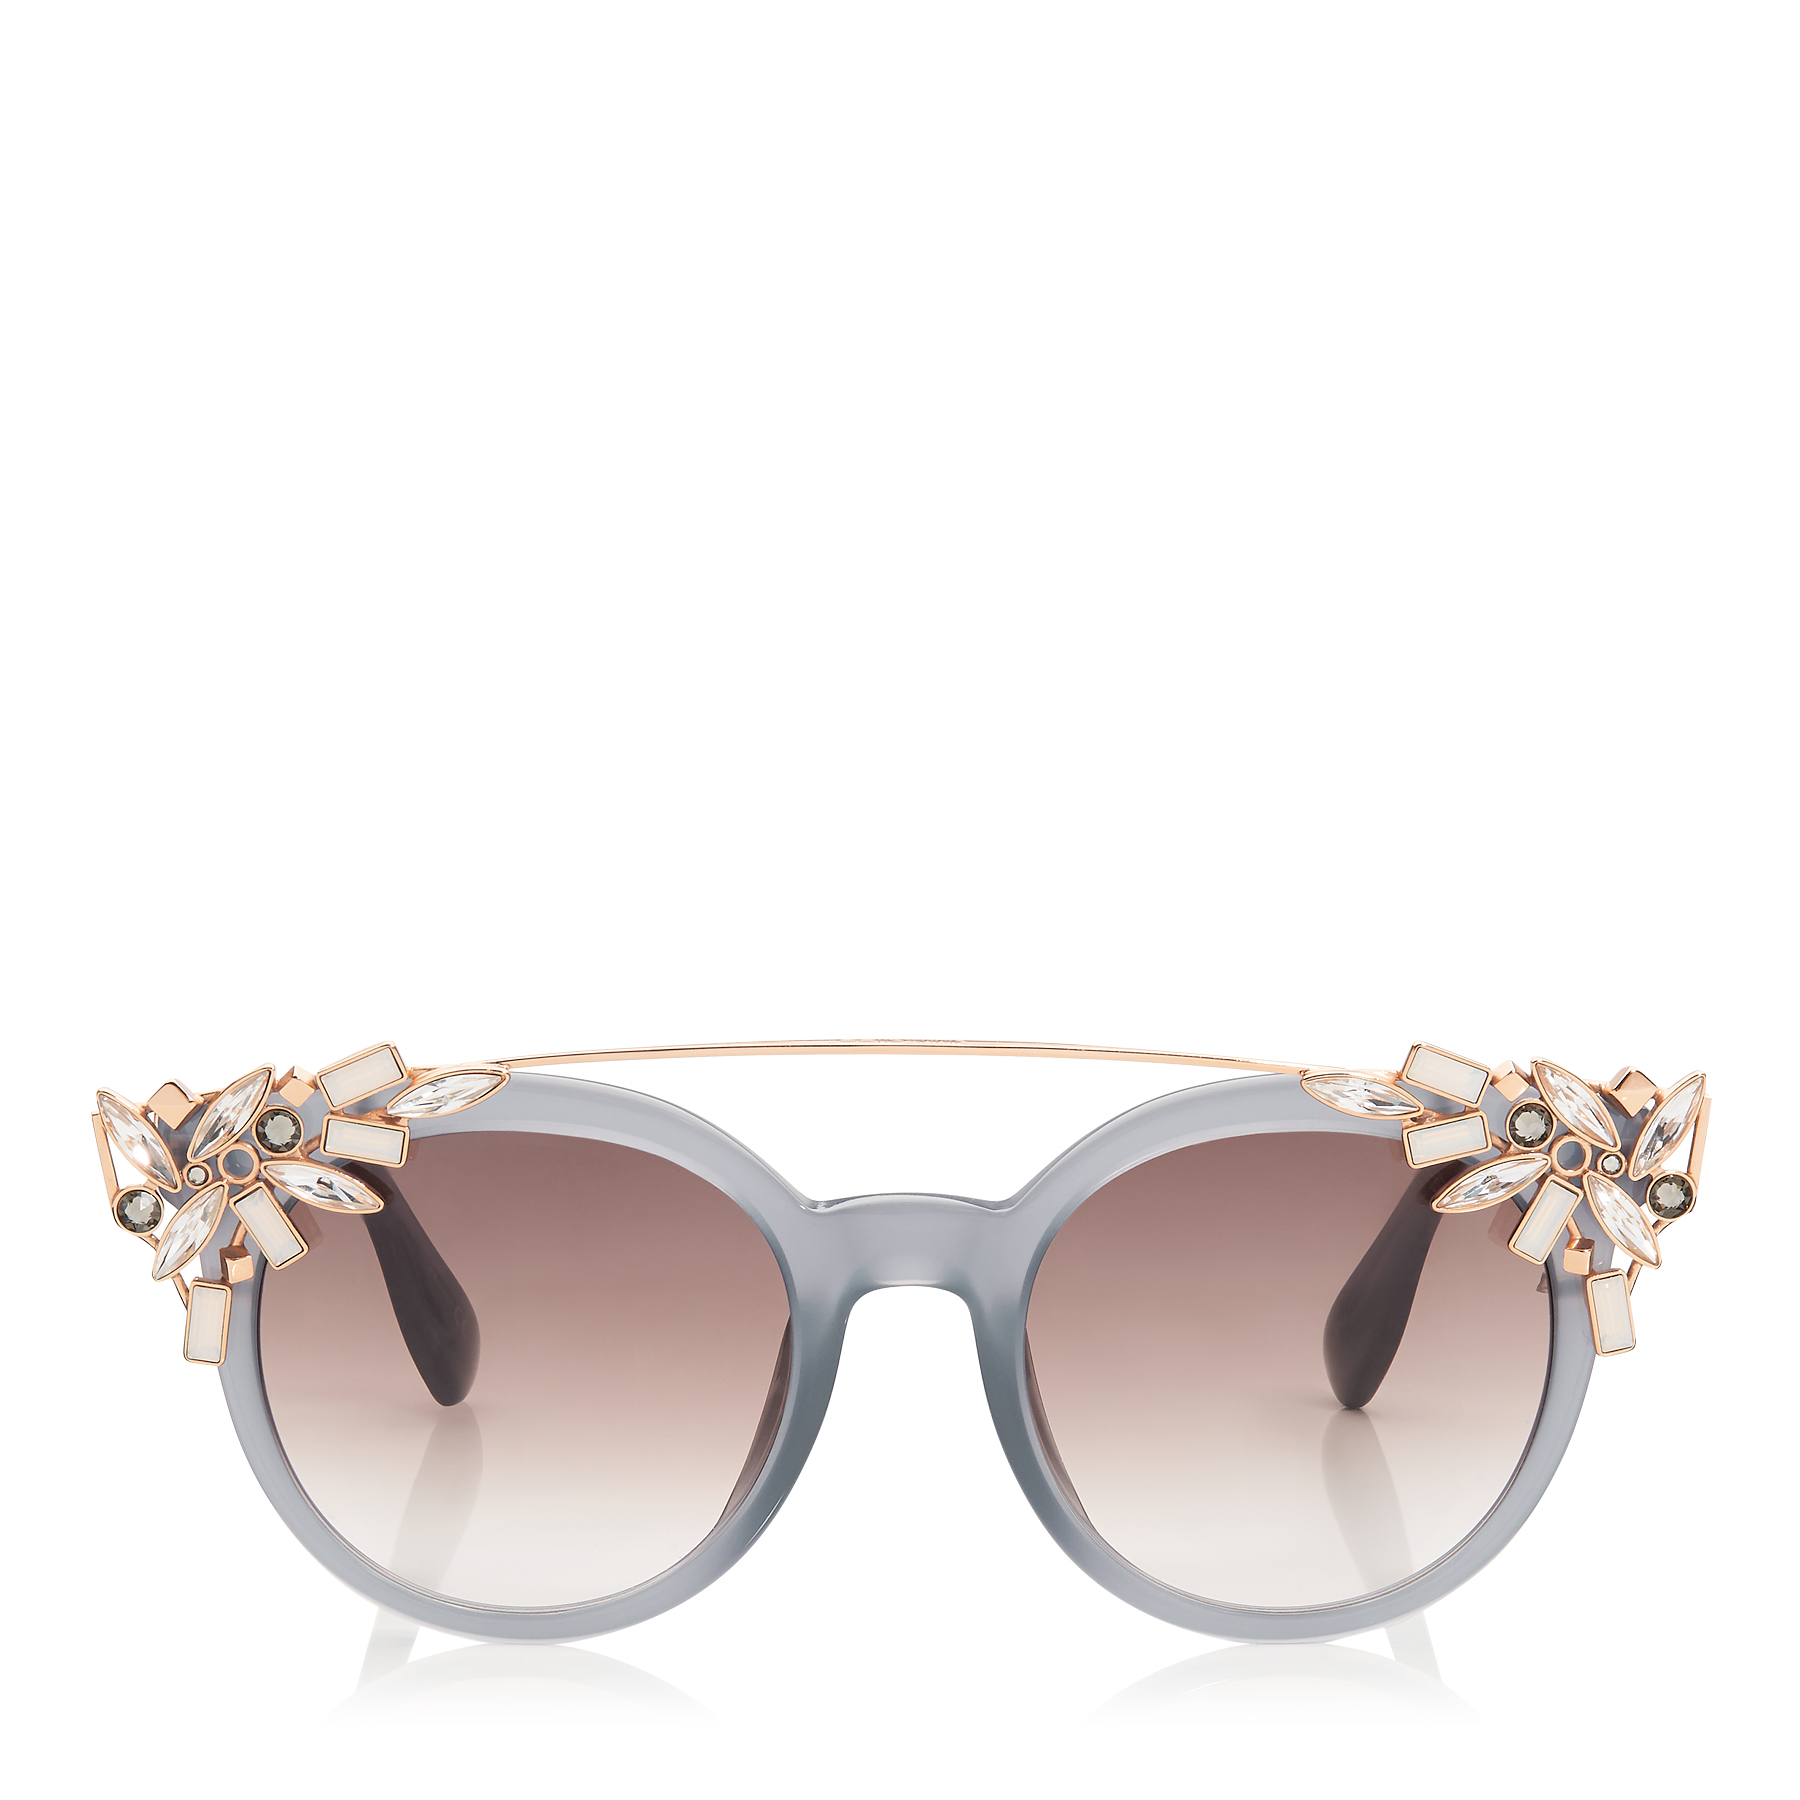 VIVY/S 51 Grey Round Framed Sunglasses with Detachable Jewel Clip On